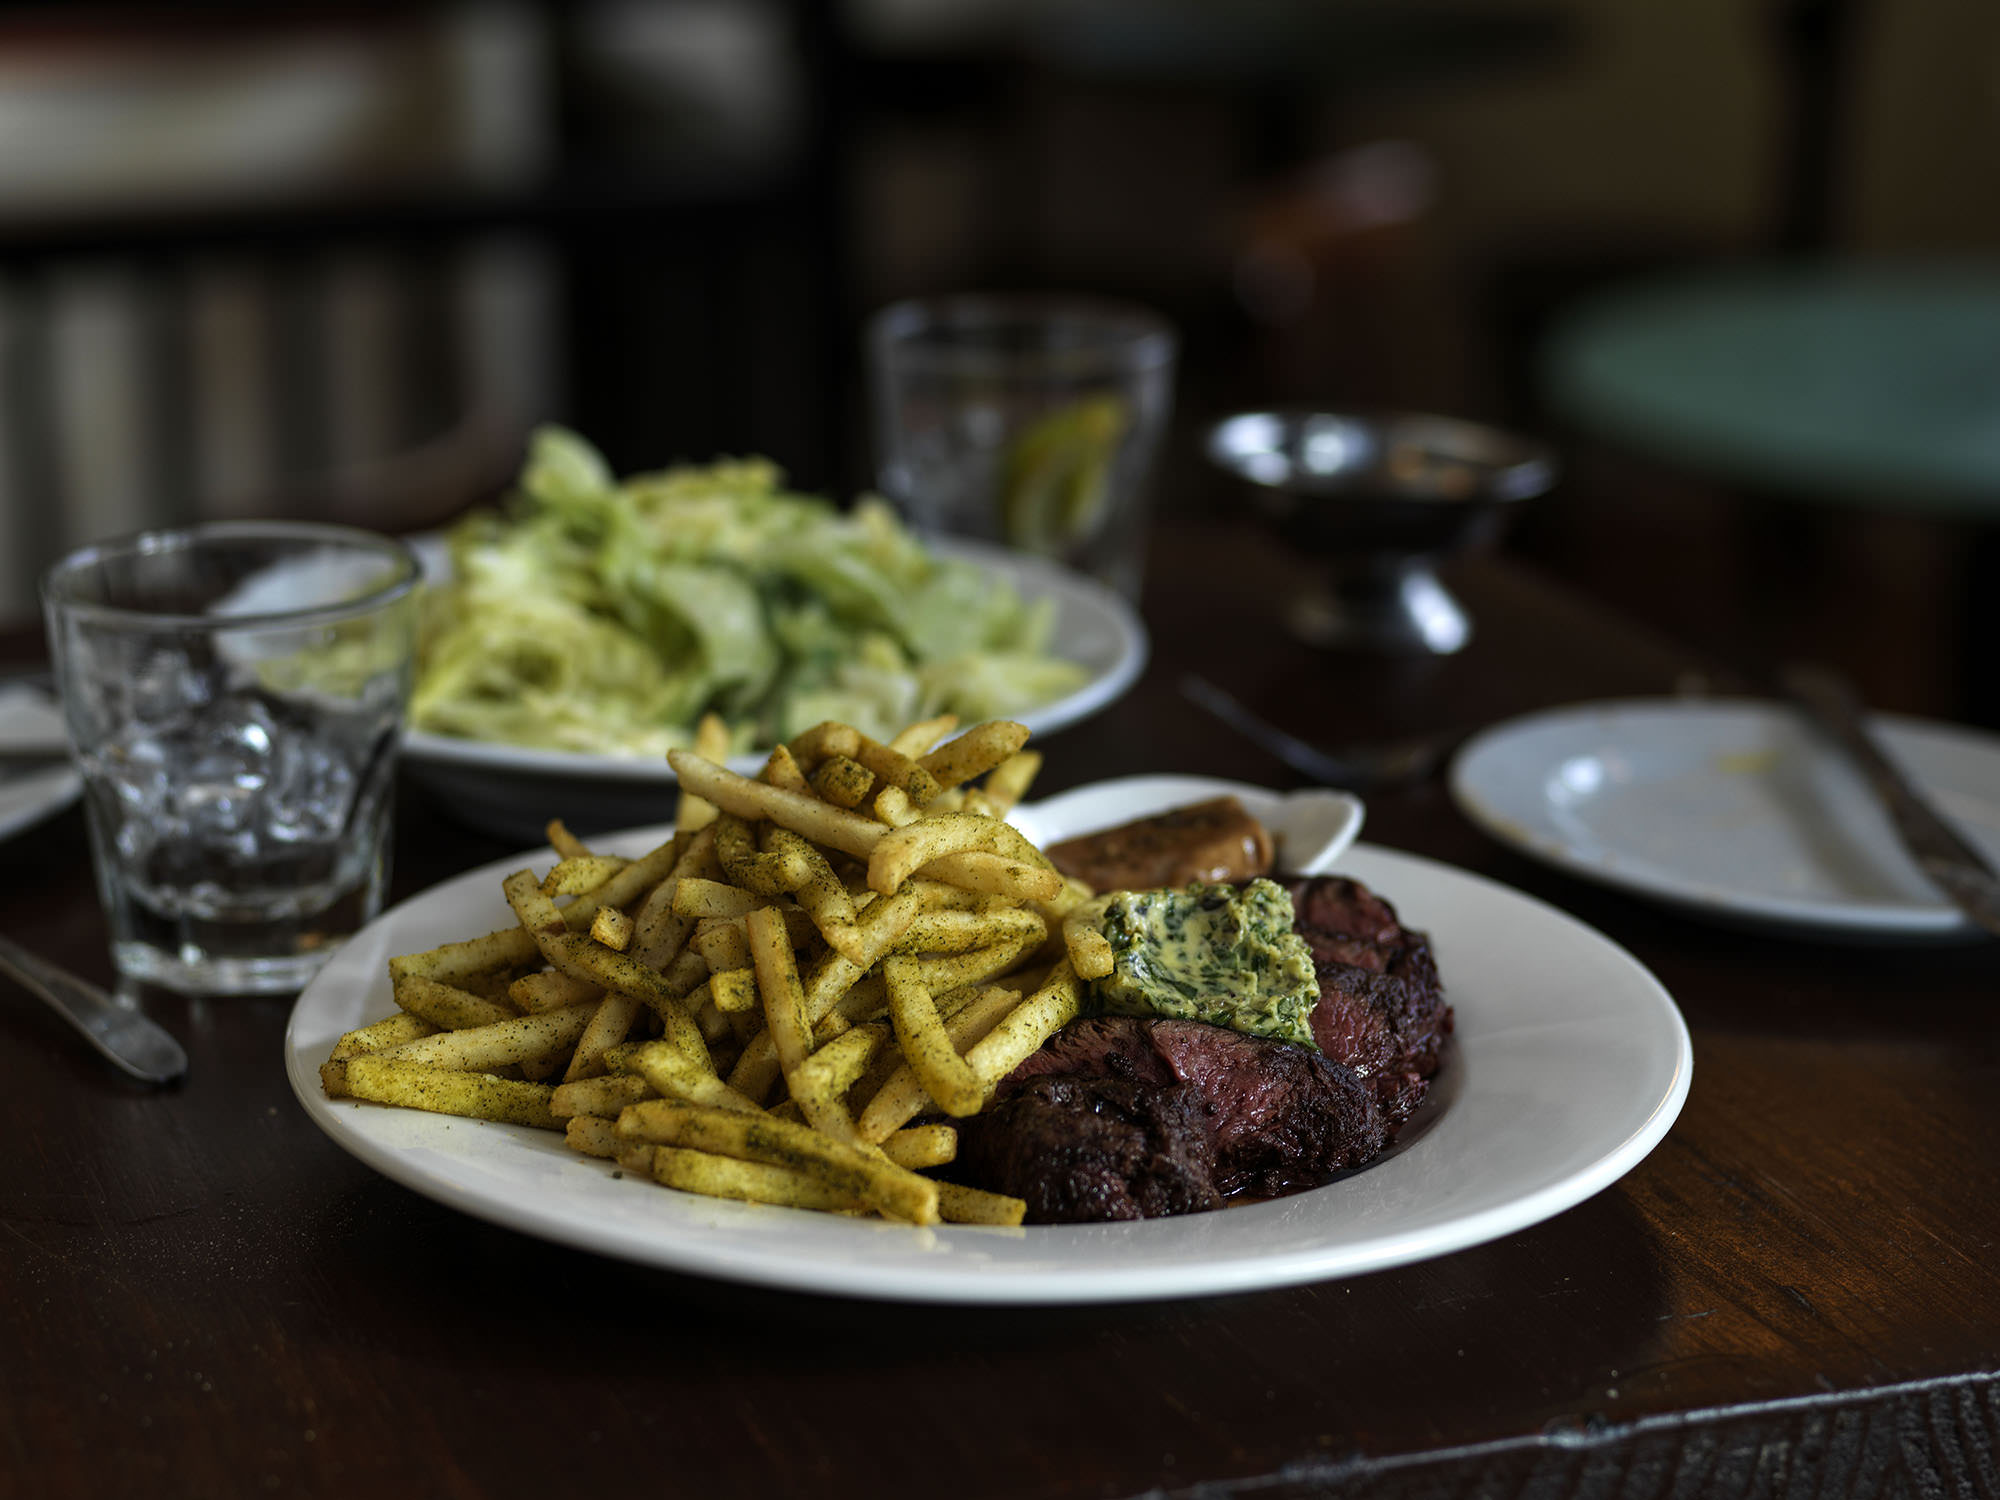 Steak frites – hanger steak with a choice of herb butter or liver butter and plenty of fries to go around.